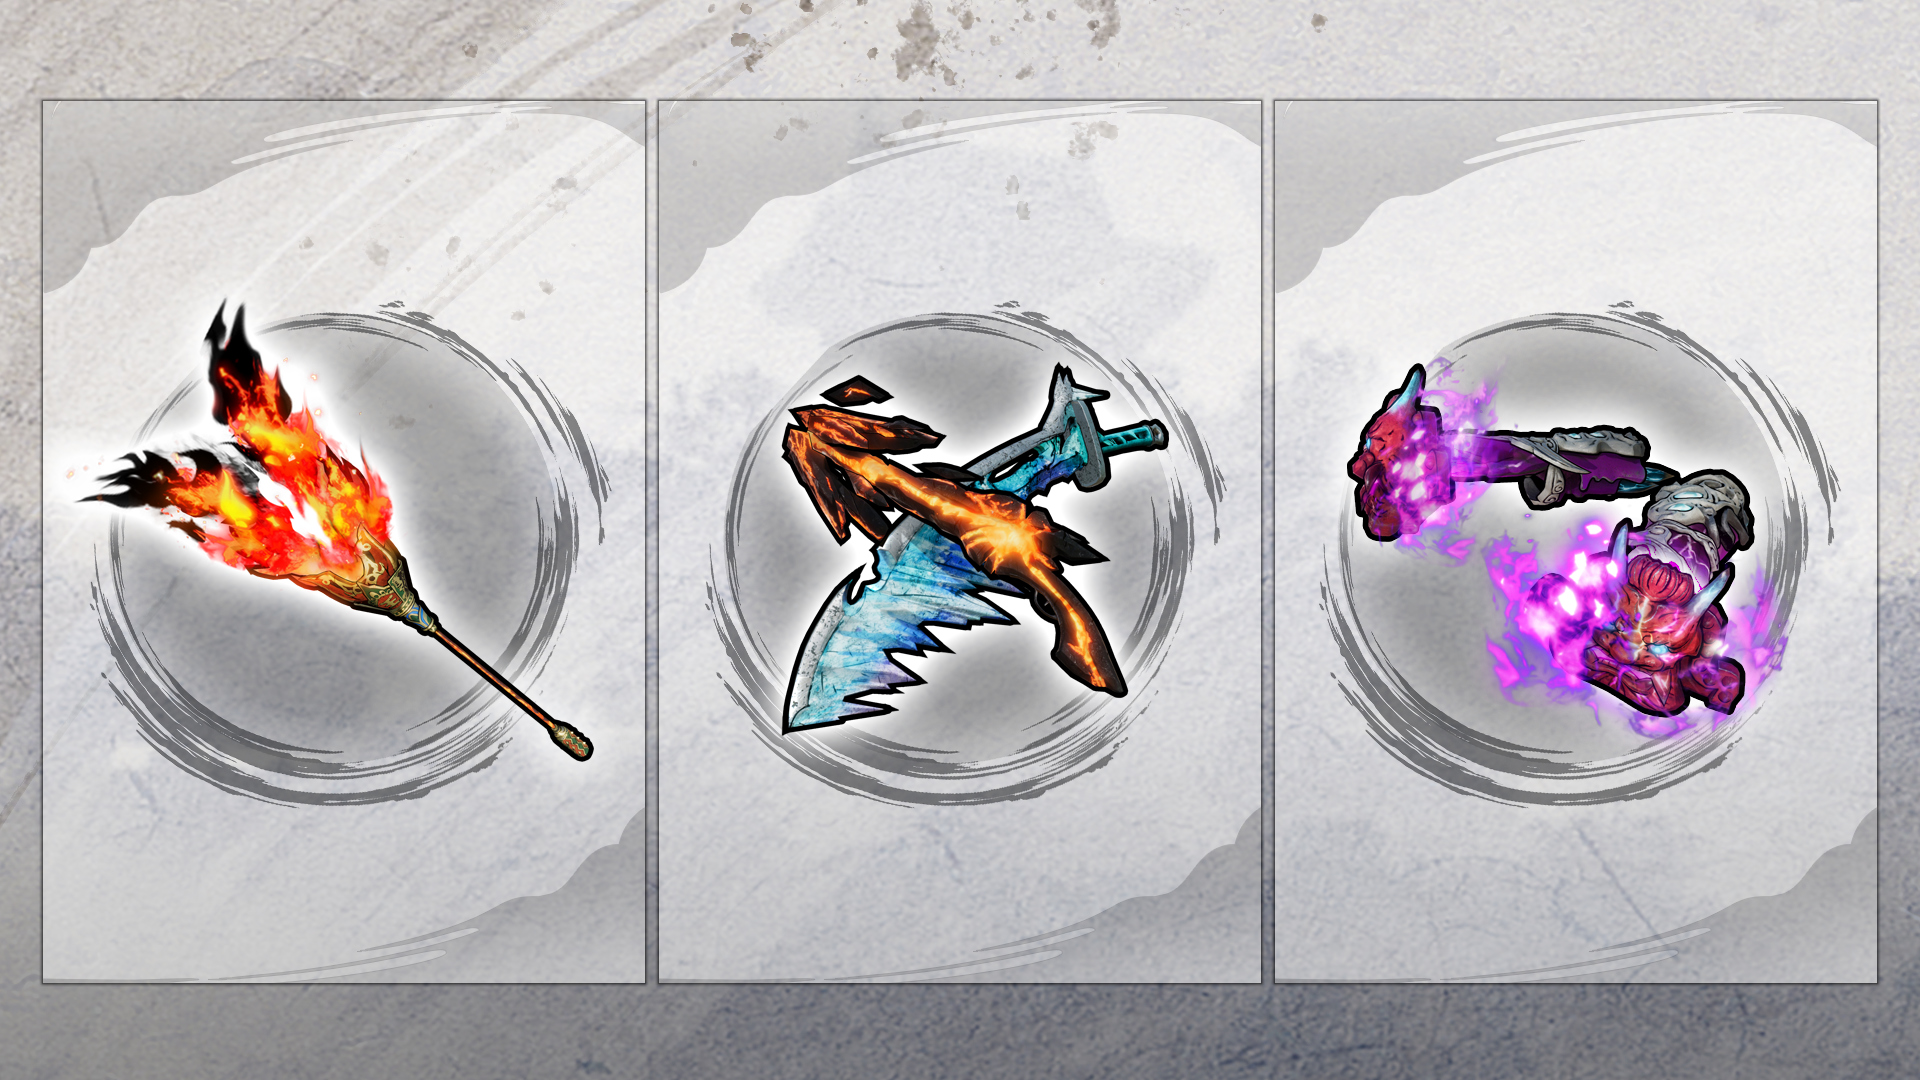 Additional Weapon set 2